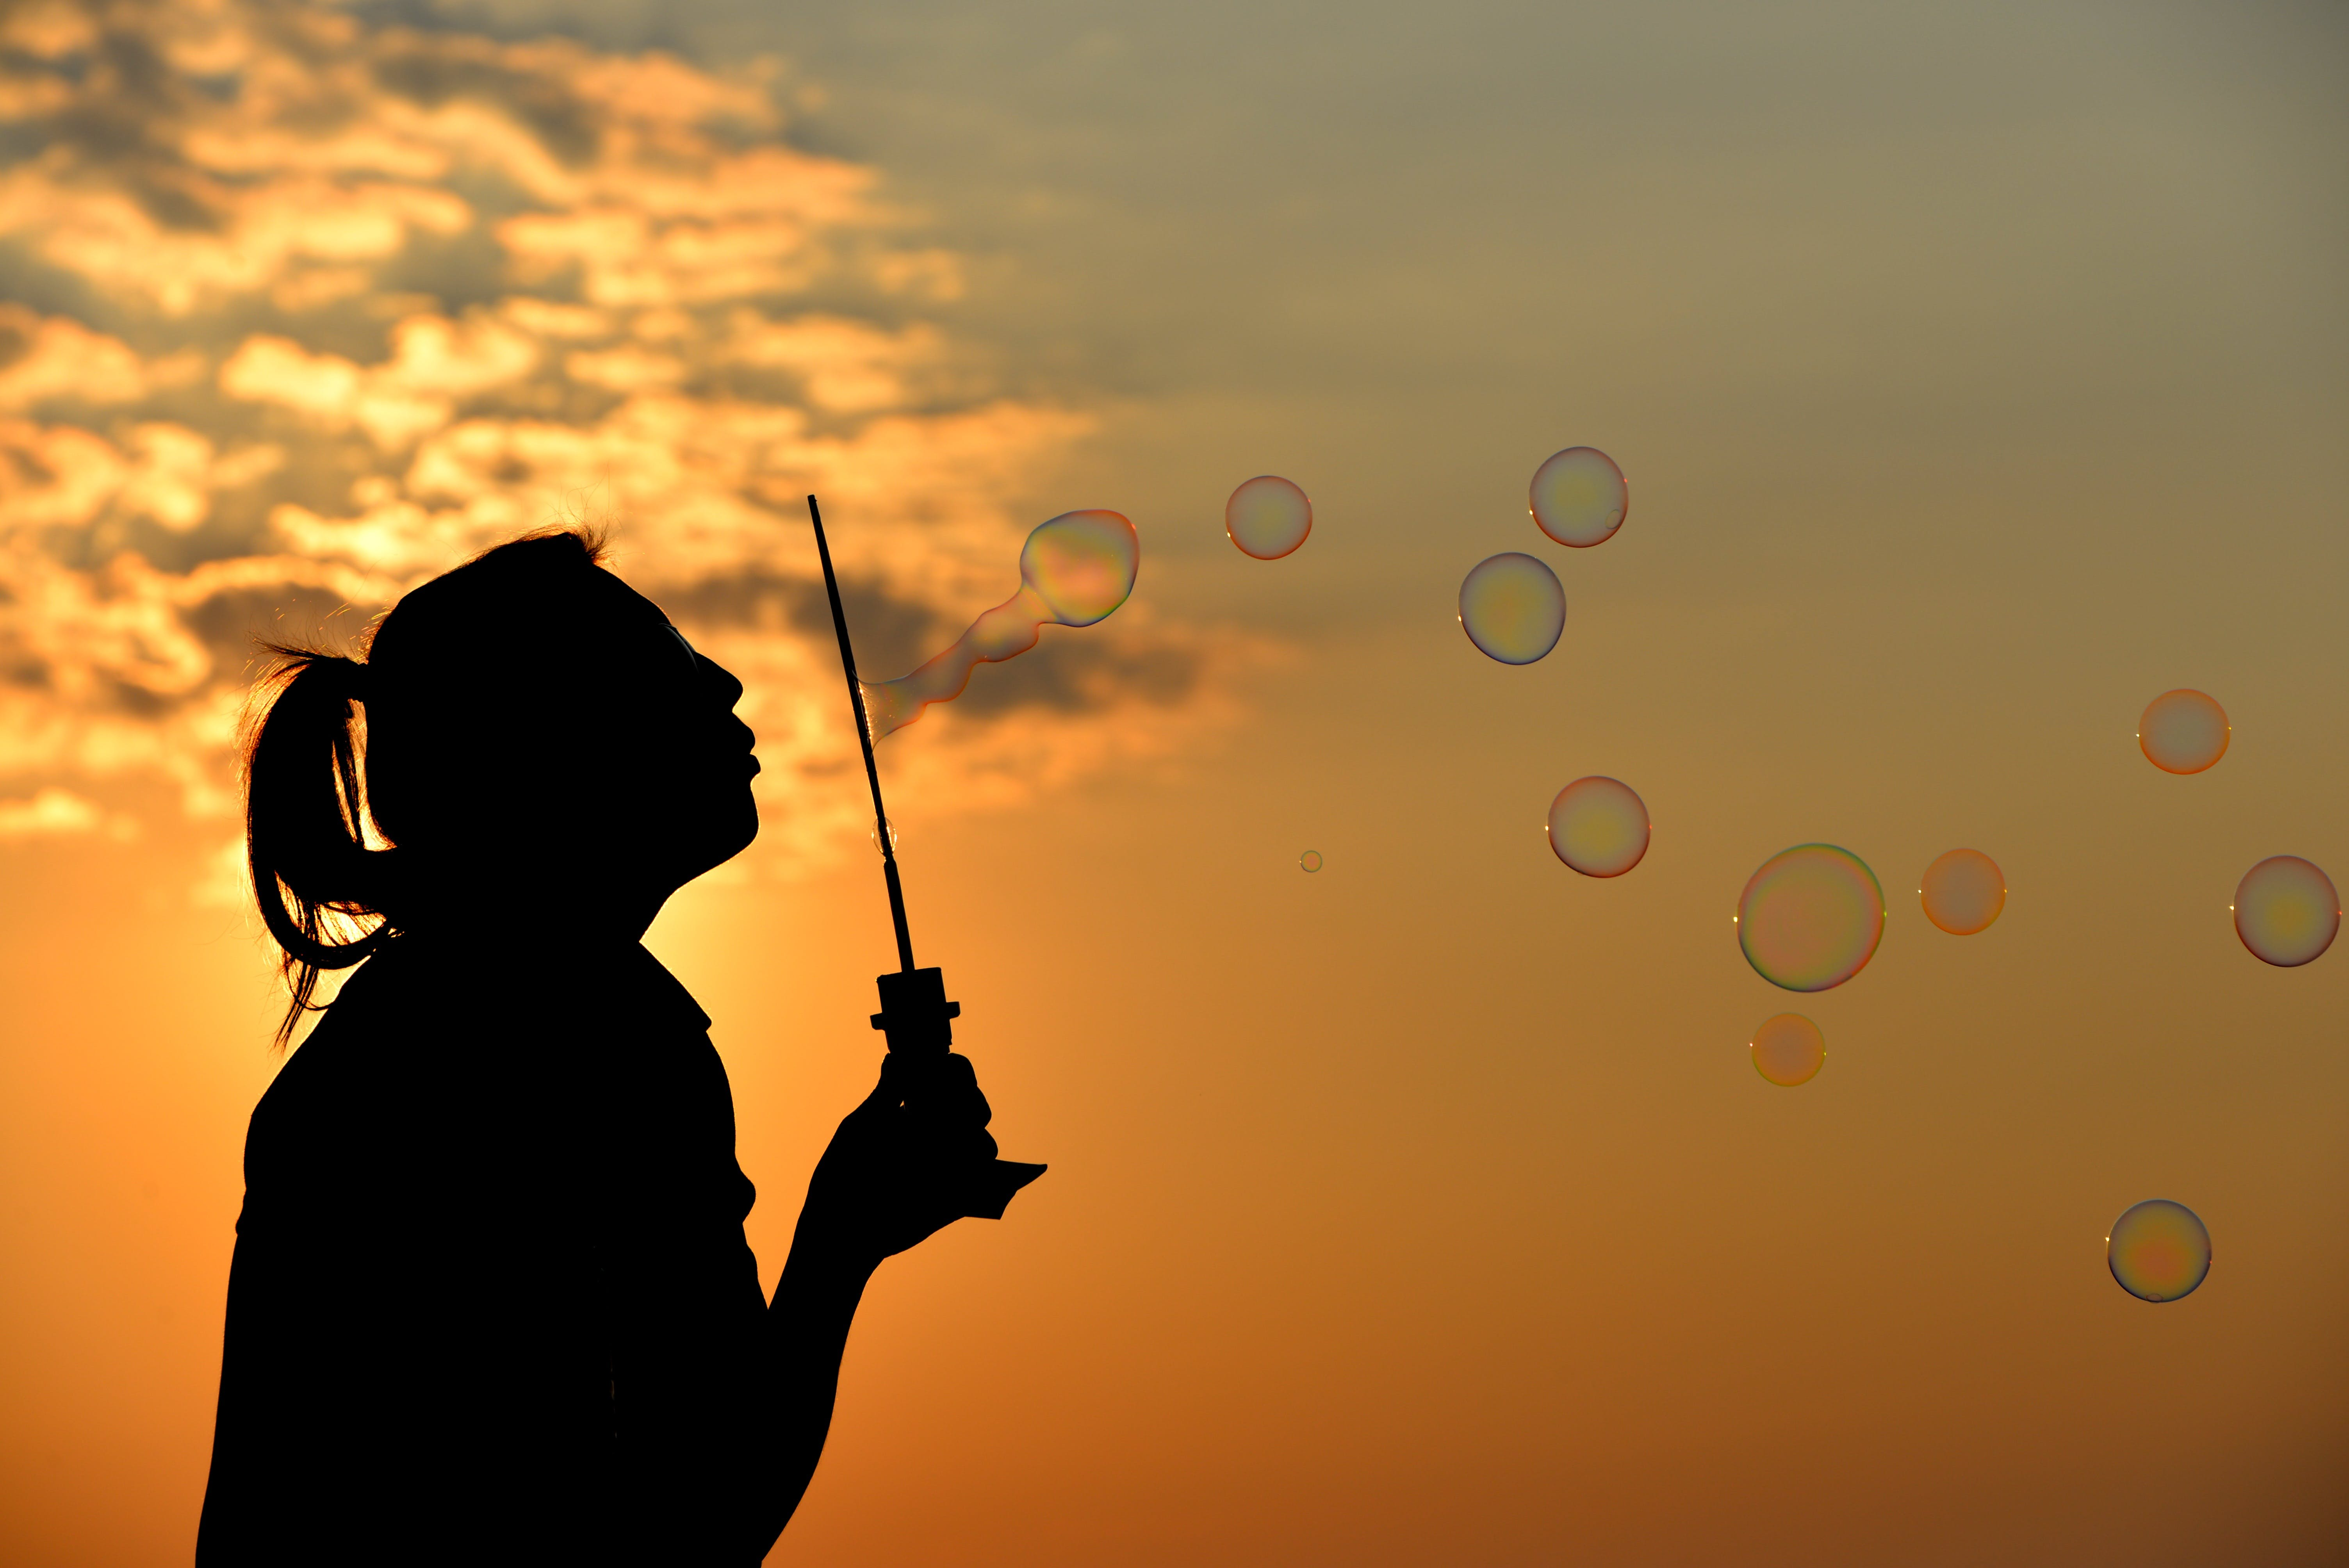 Silhouette Photo of Person Blowing Bubbles during Golden Hour